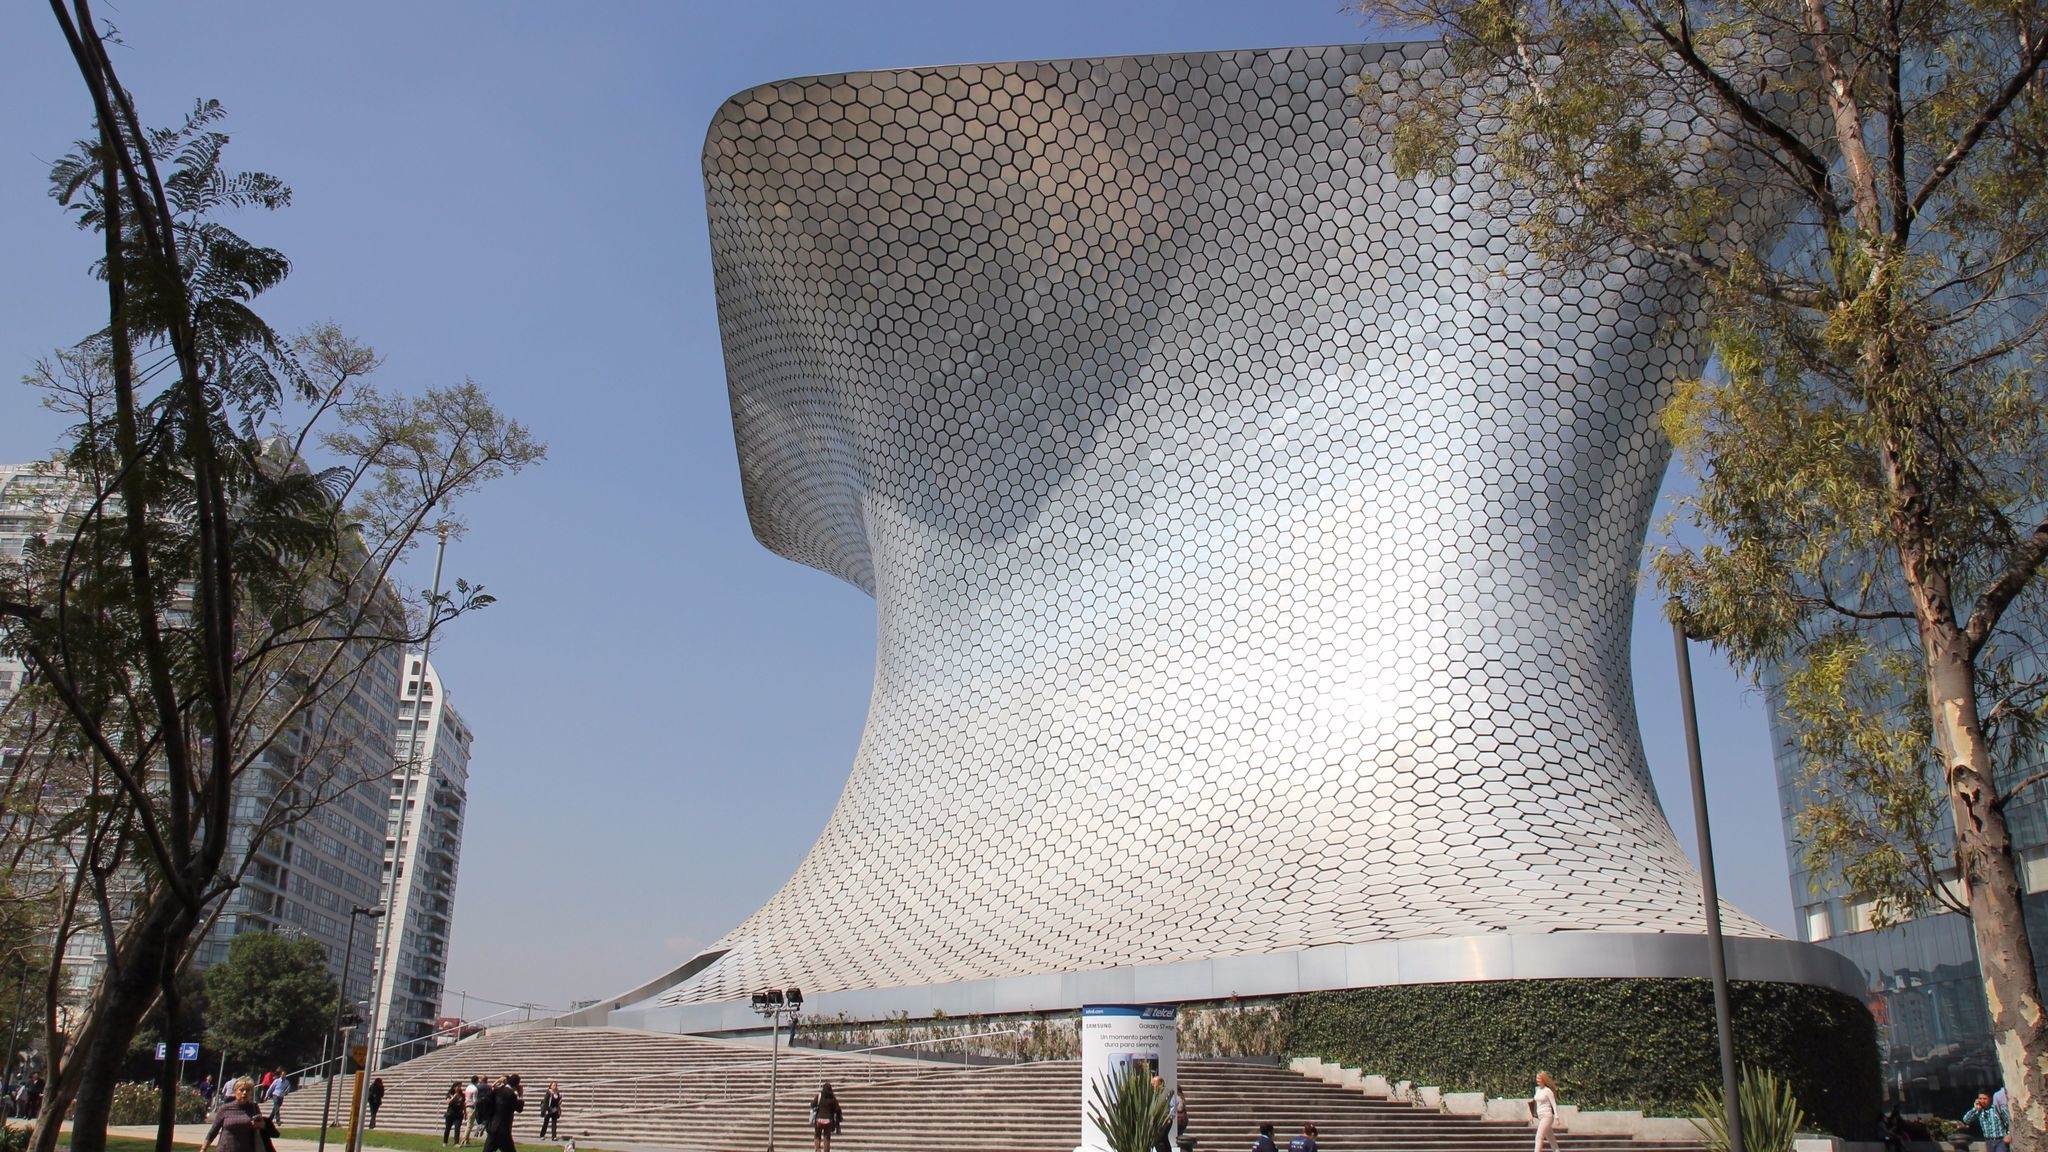 The Museo Soumaya in Mexico City, which shows the collection of Carlos Slim.